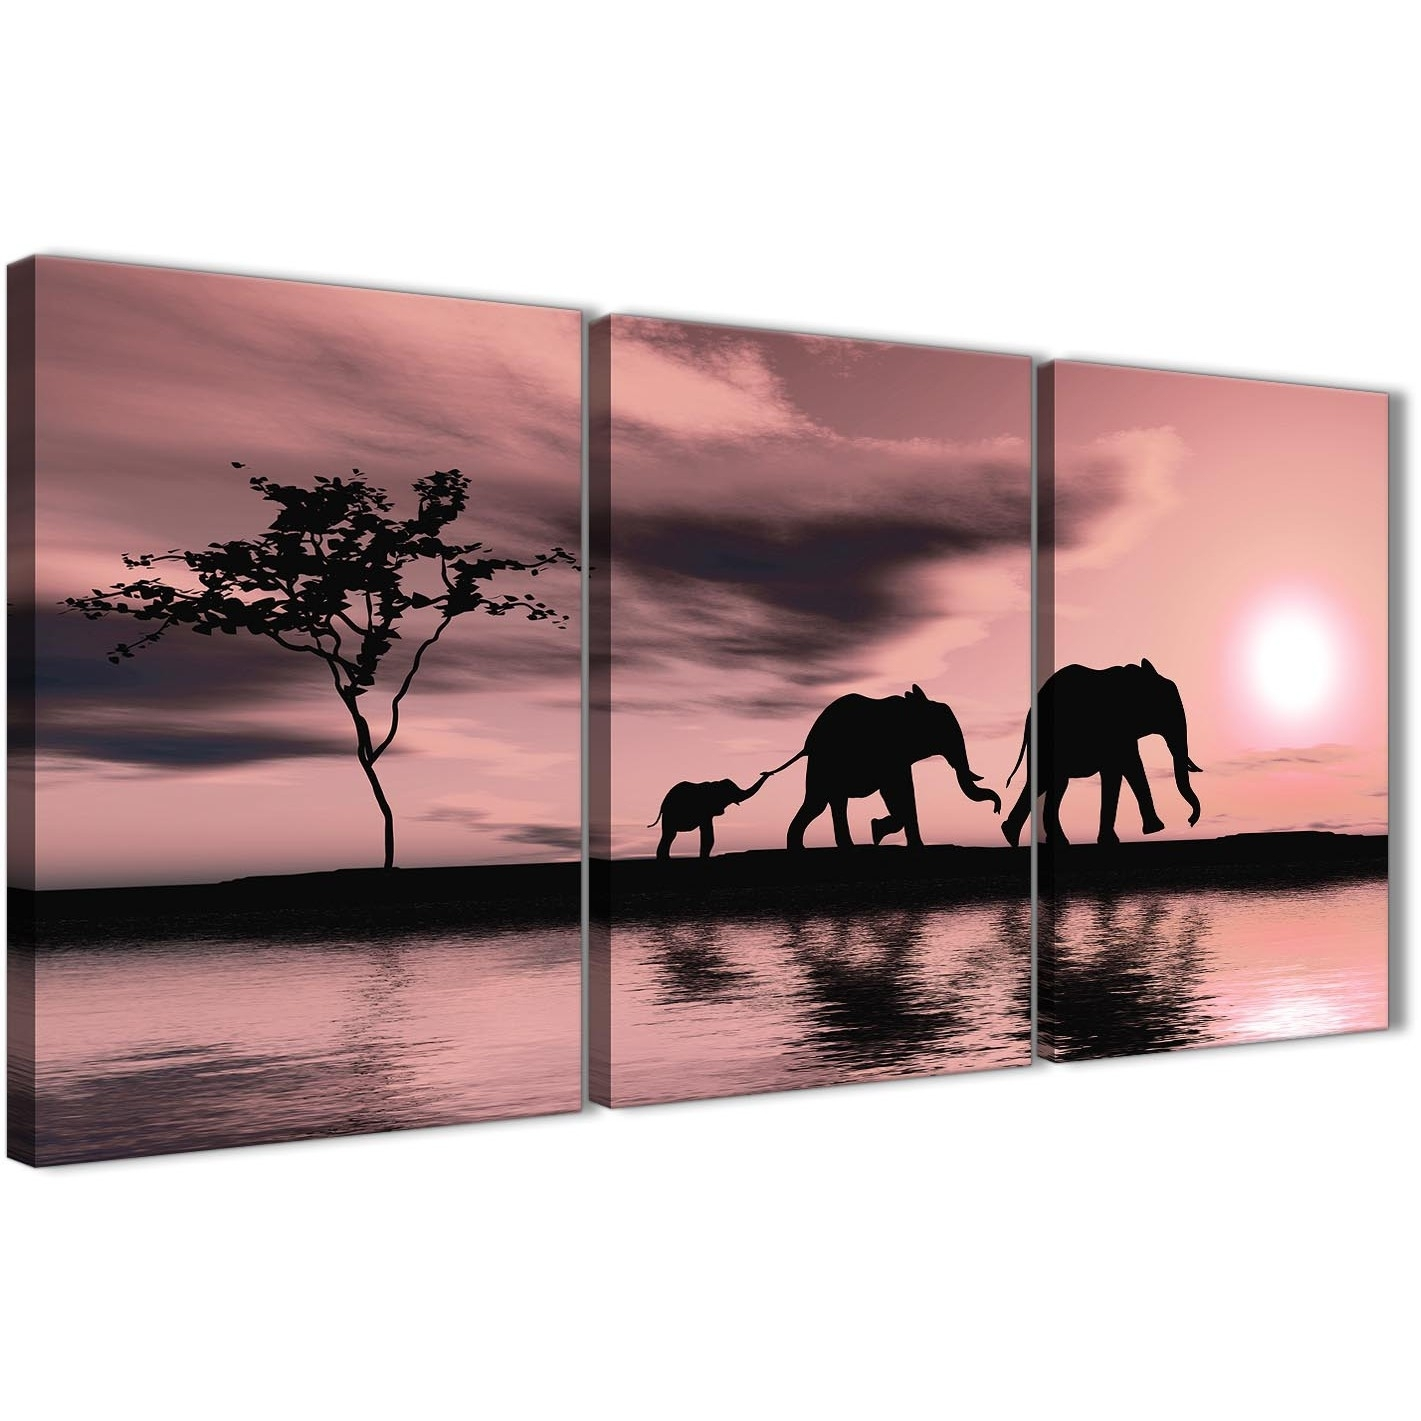 Blush Pink African Sunset Elephants Canvas Wall Art Print - Multi intended for Elephant Canvas Wall Art (Image 9 of 20)